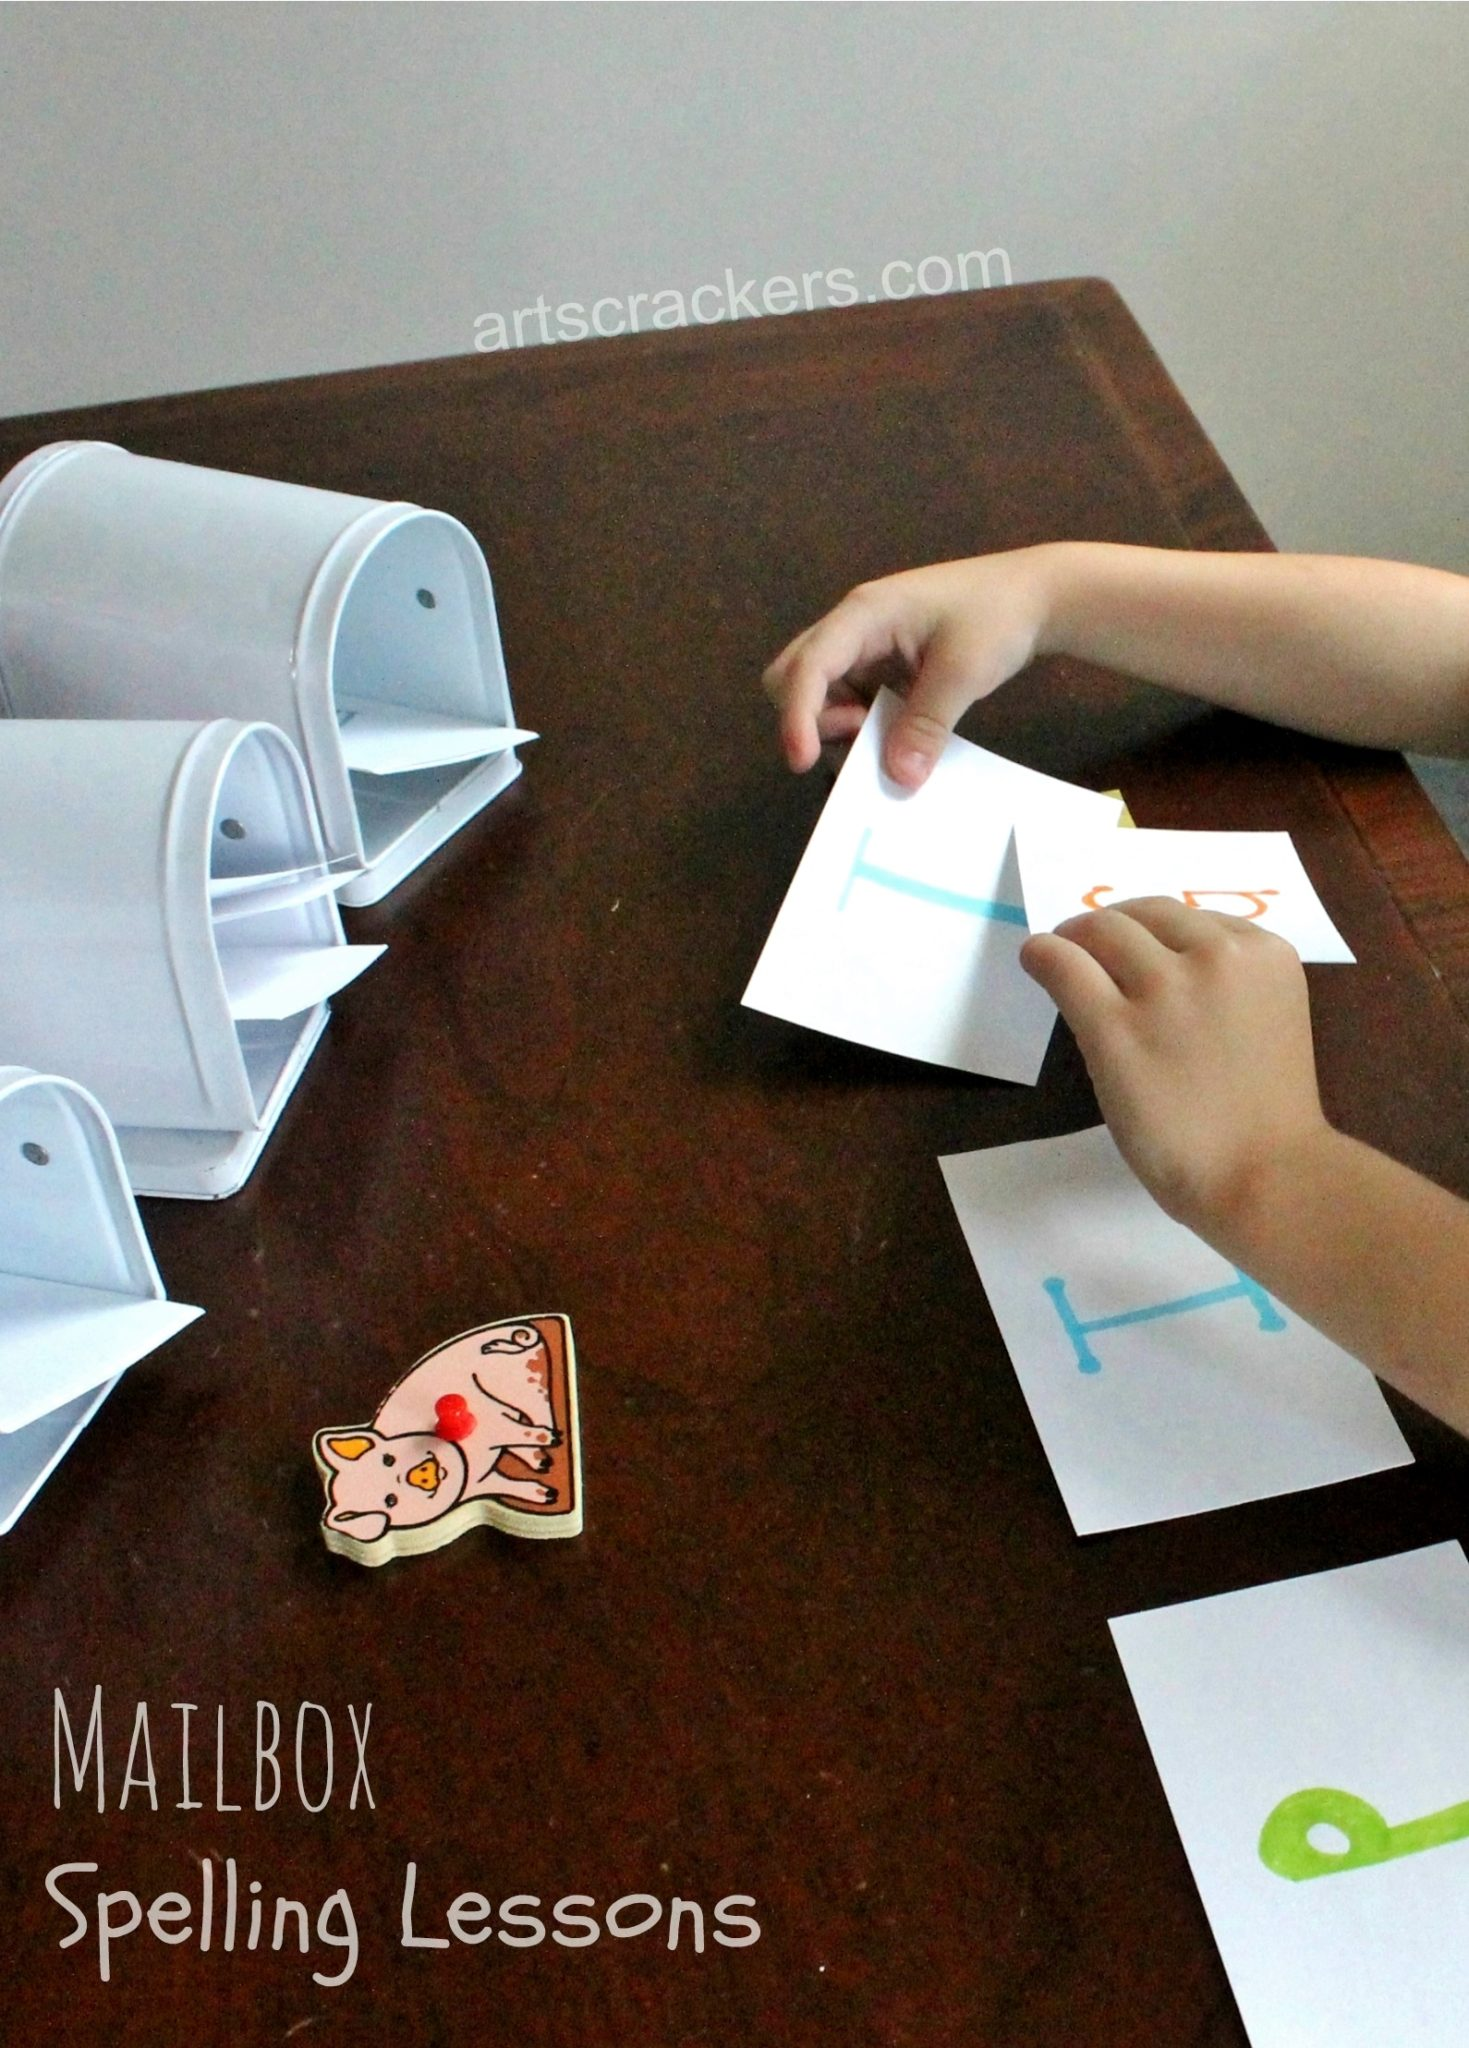 Mailbox Spelling and Word Building Lessons Activity. Click the picture to view the instructions.